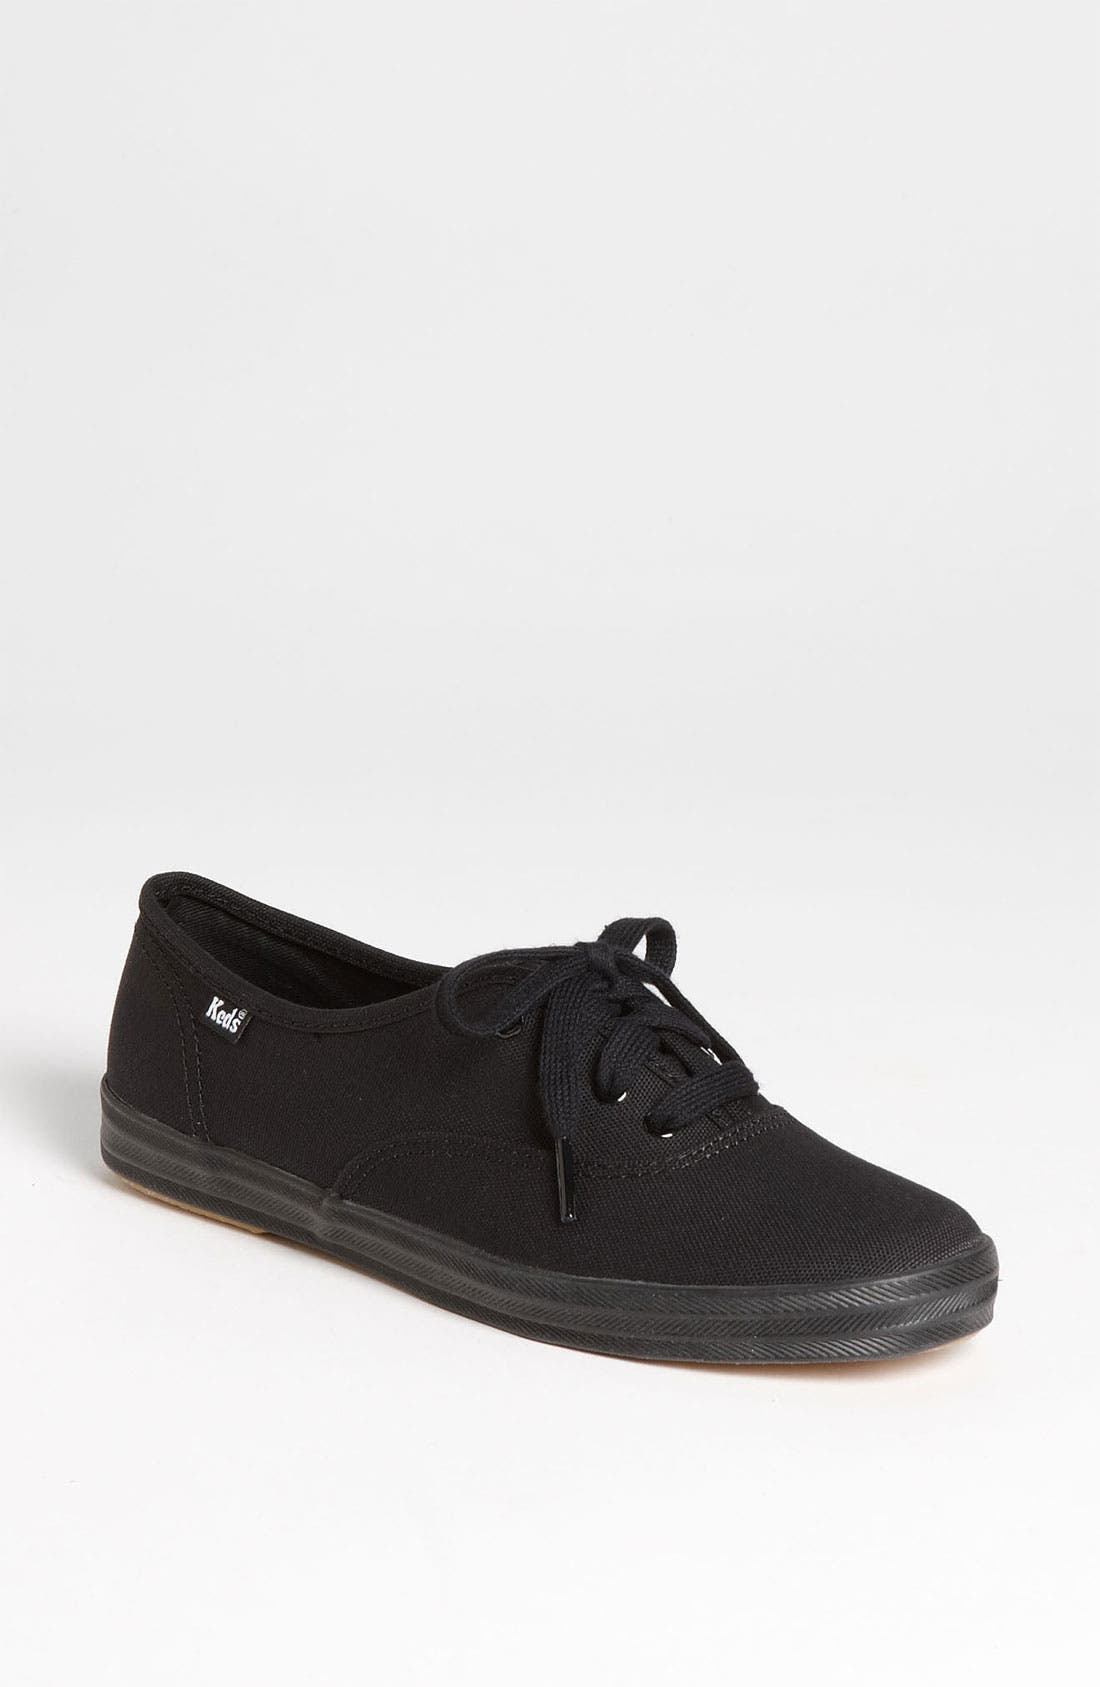 Alternate Image 1 Selected - Keds® 'Champion' Canvas Sneaker (Women)